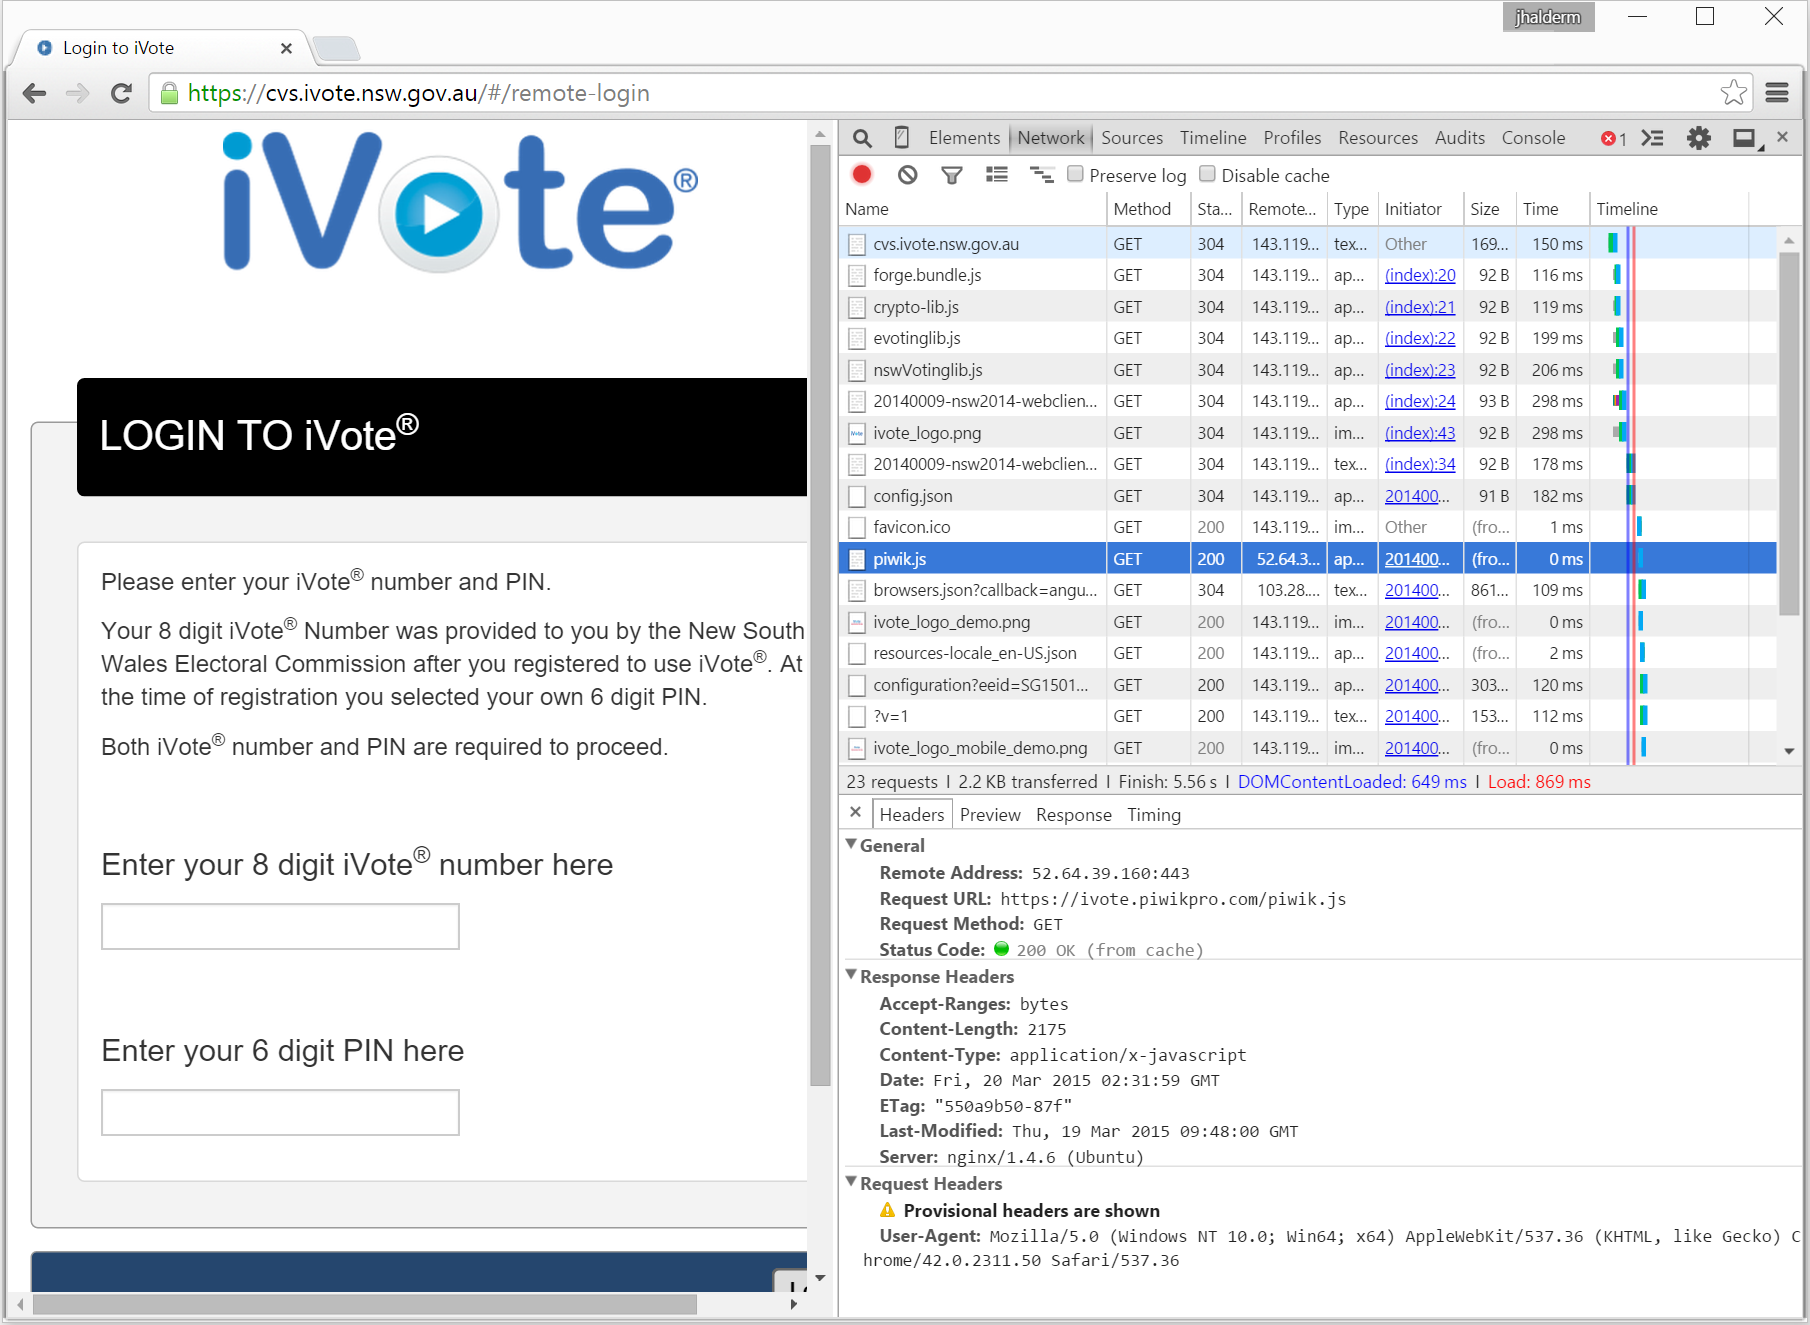 Security bug in Australia's online voting system throws